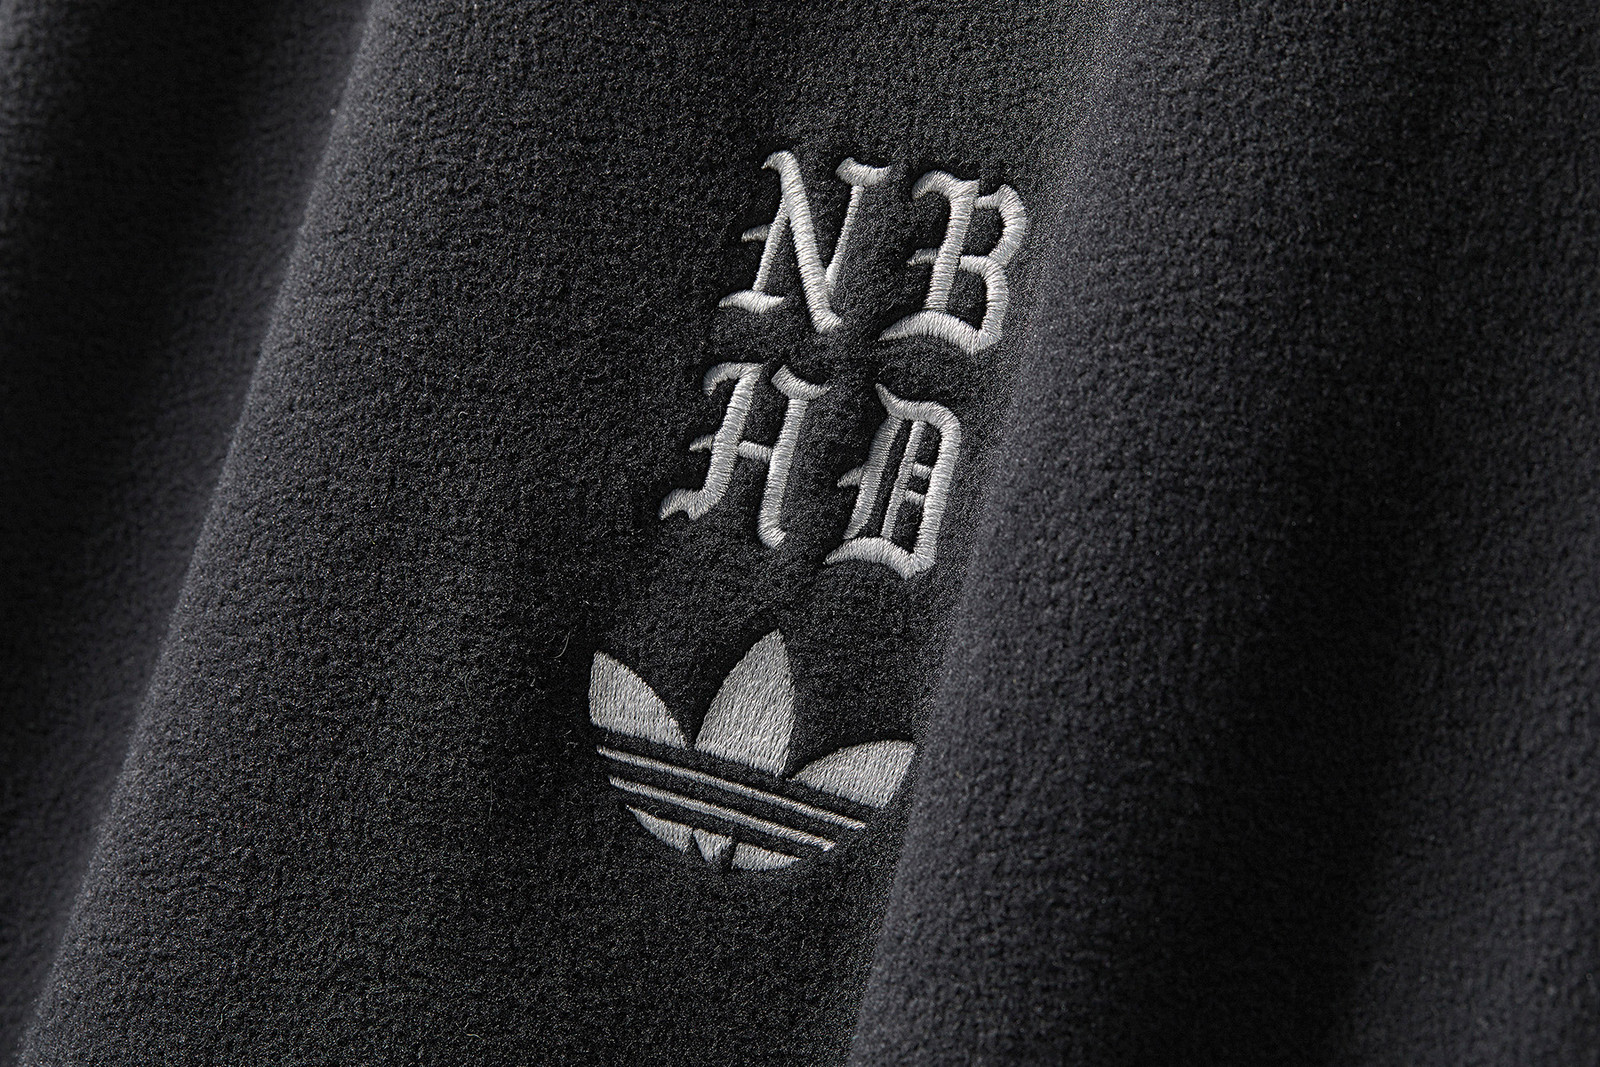 NEIGHBORHOOD adidas Originals Fall Winter 2018 lookbook cali thornhill dewitt la los angeles shinsuke takizawa japan collaboration collection official look drop release date info kamanda tracksuit sneaker september 1 2018 Stan Smith I-5923 graphics